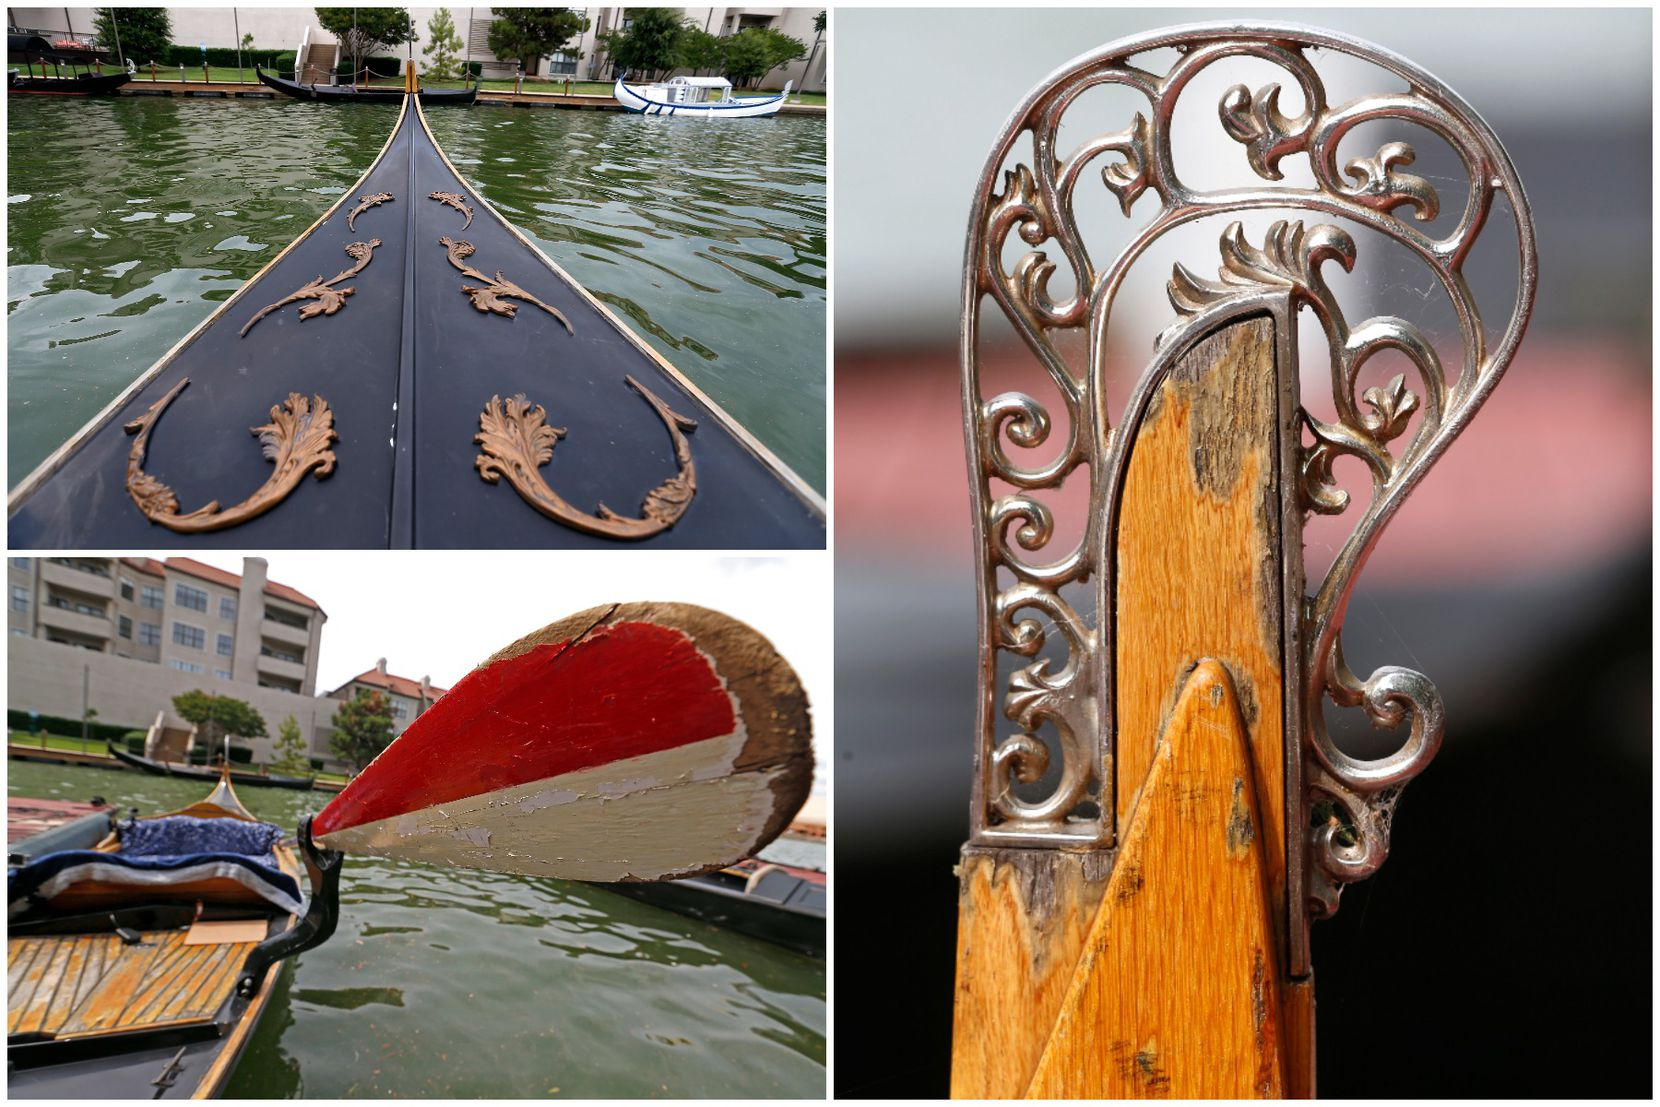 Closeup views of the bow, tail and oar of a gondola on Lake Carolyn in Irving, Texas.